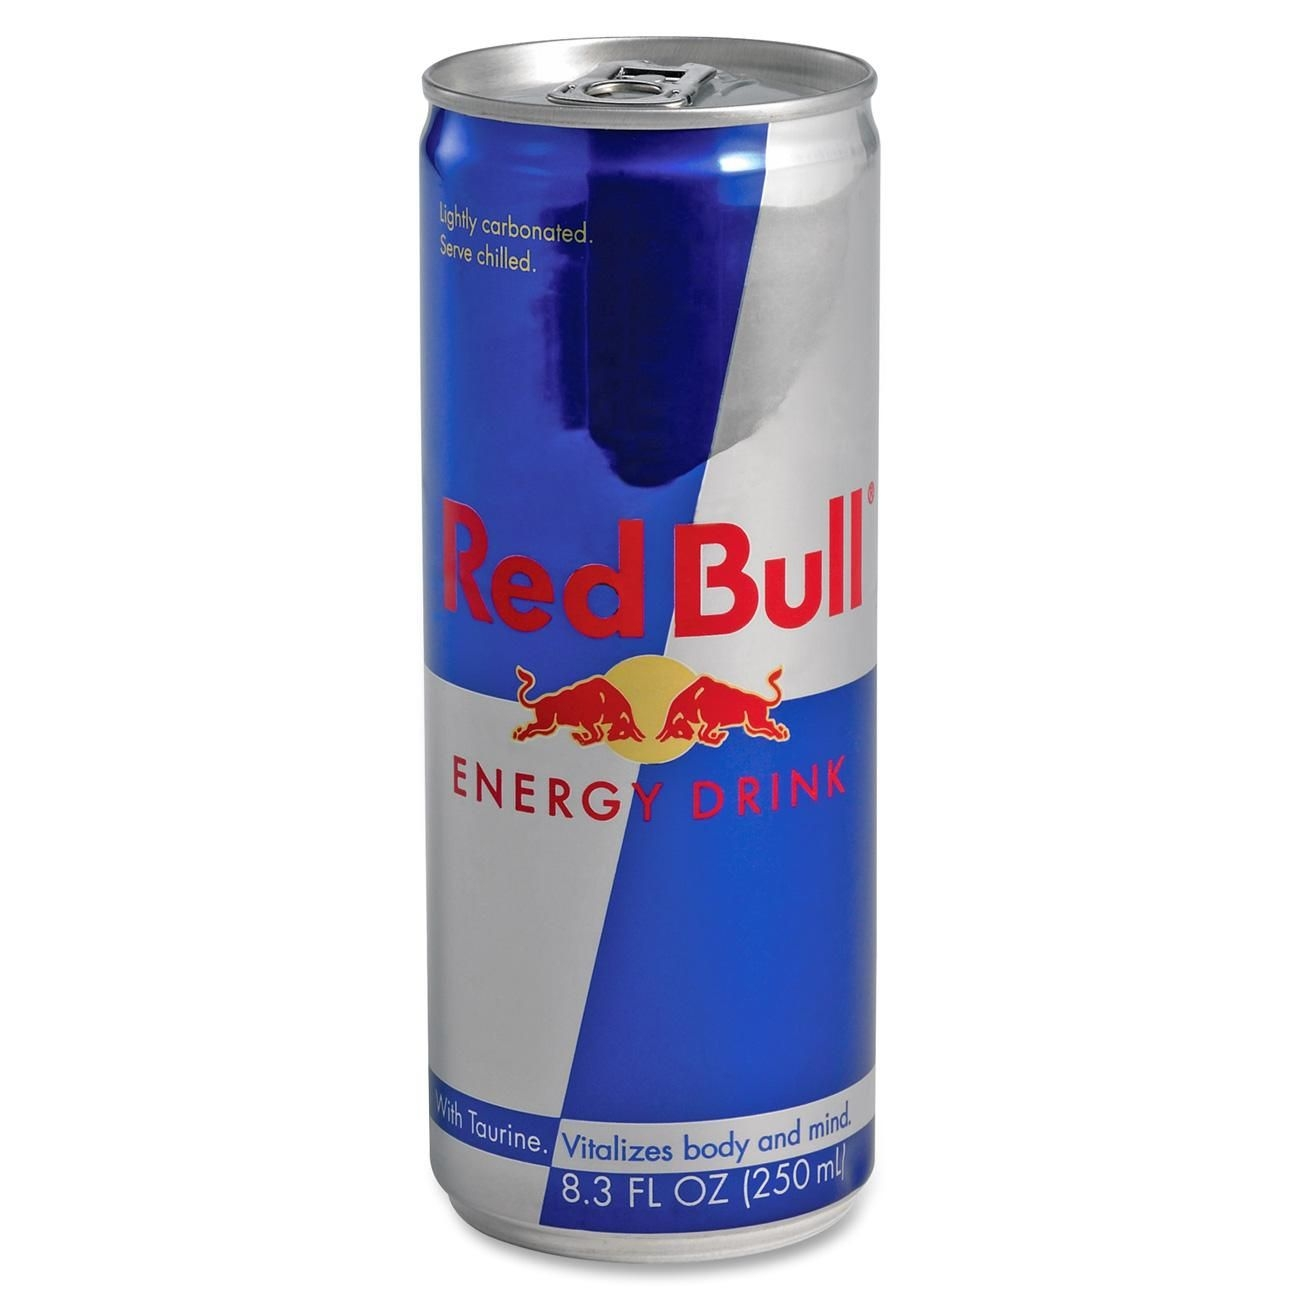 Red Bull clipart blue ENERGY DRINKS SATANIC com/mm5/graphics/product_images/ theofficedealer